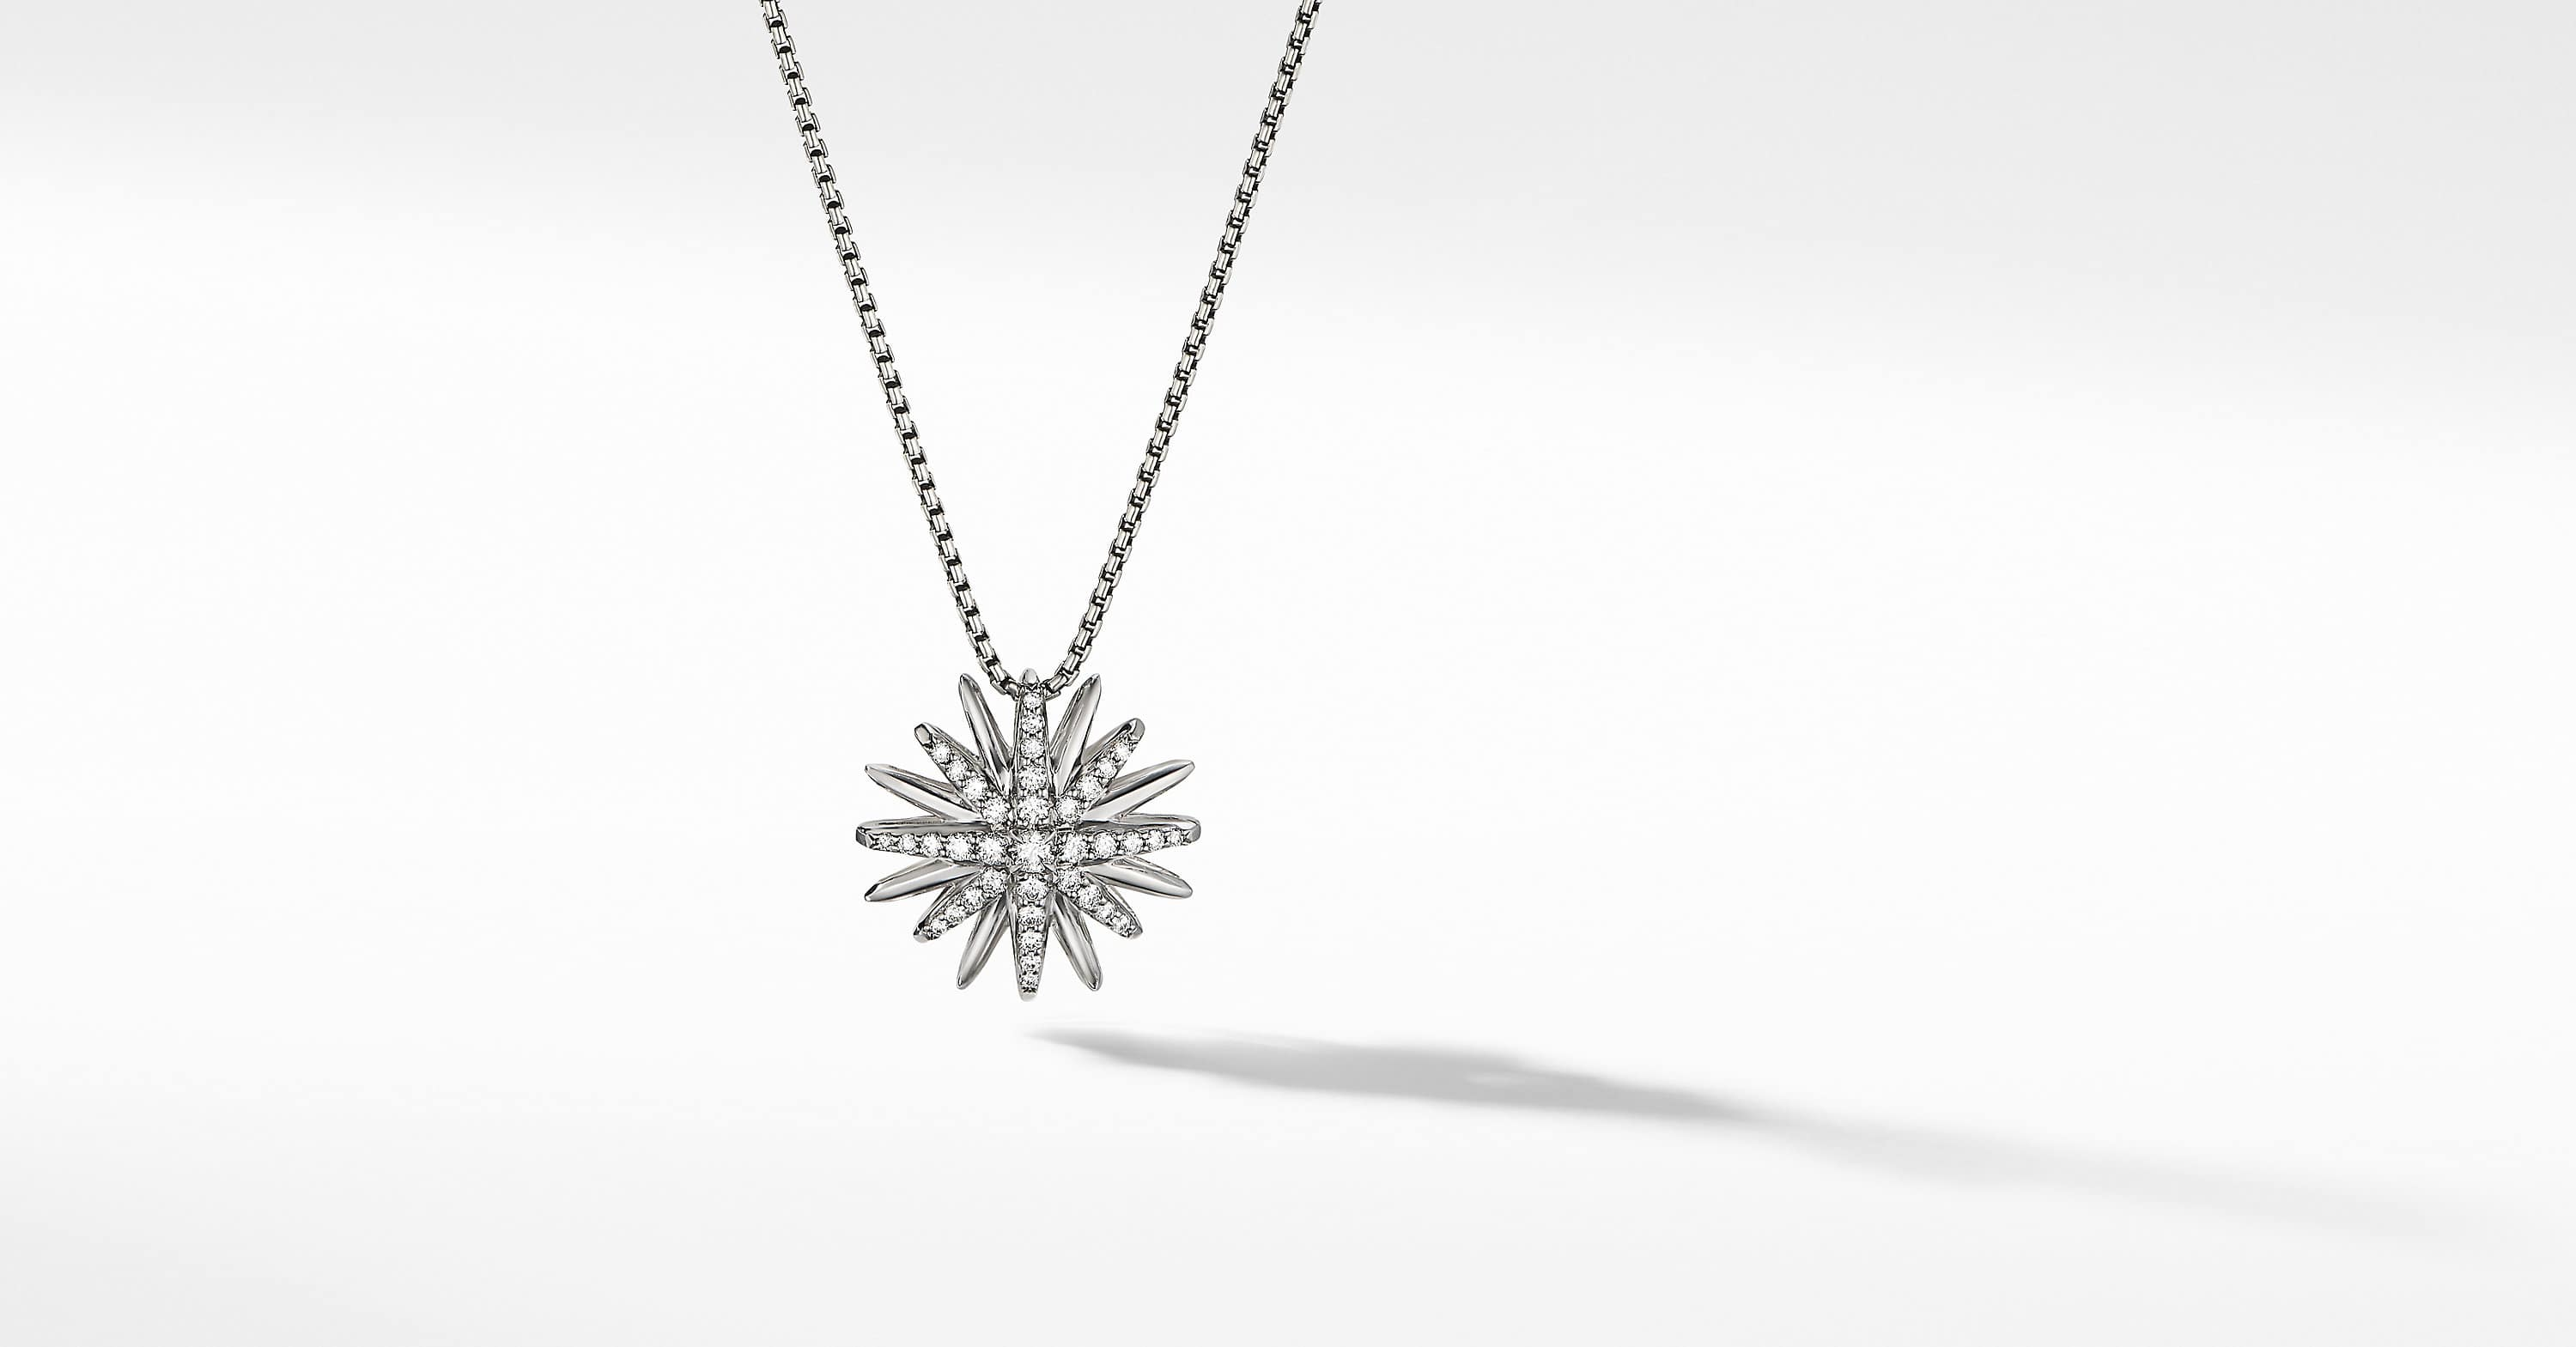 Starburst Pendant with Diamonds, 19mm